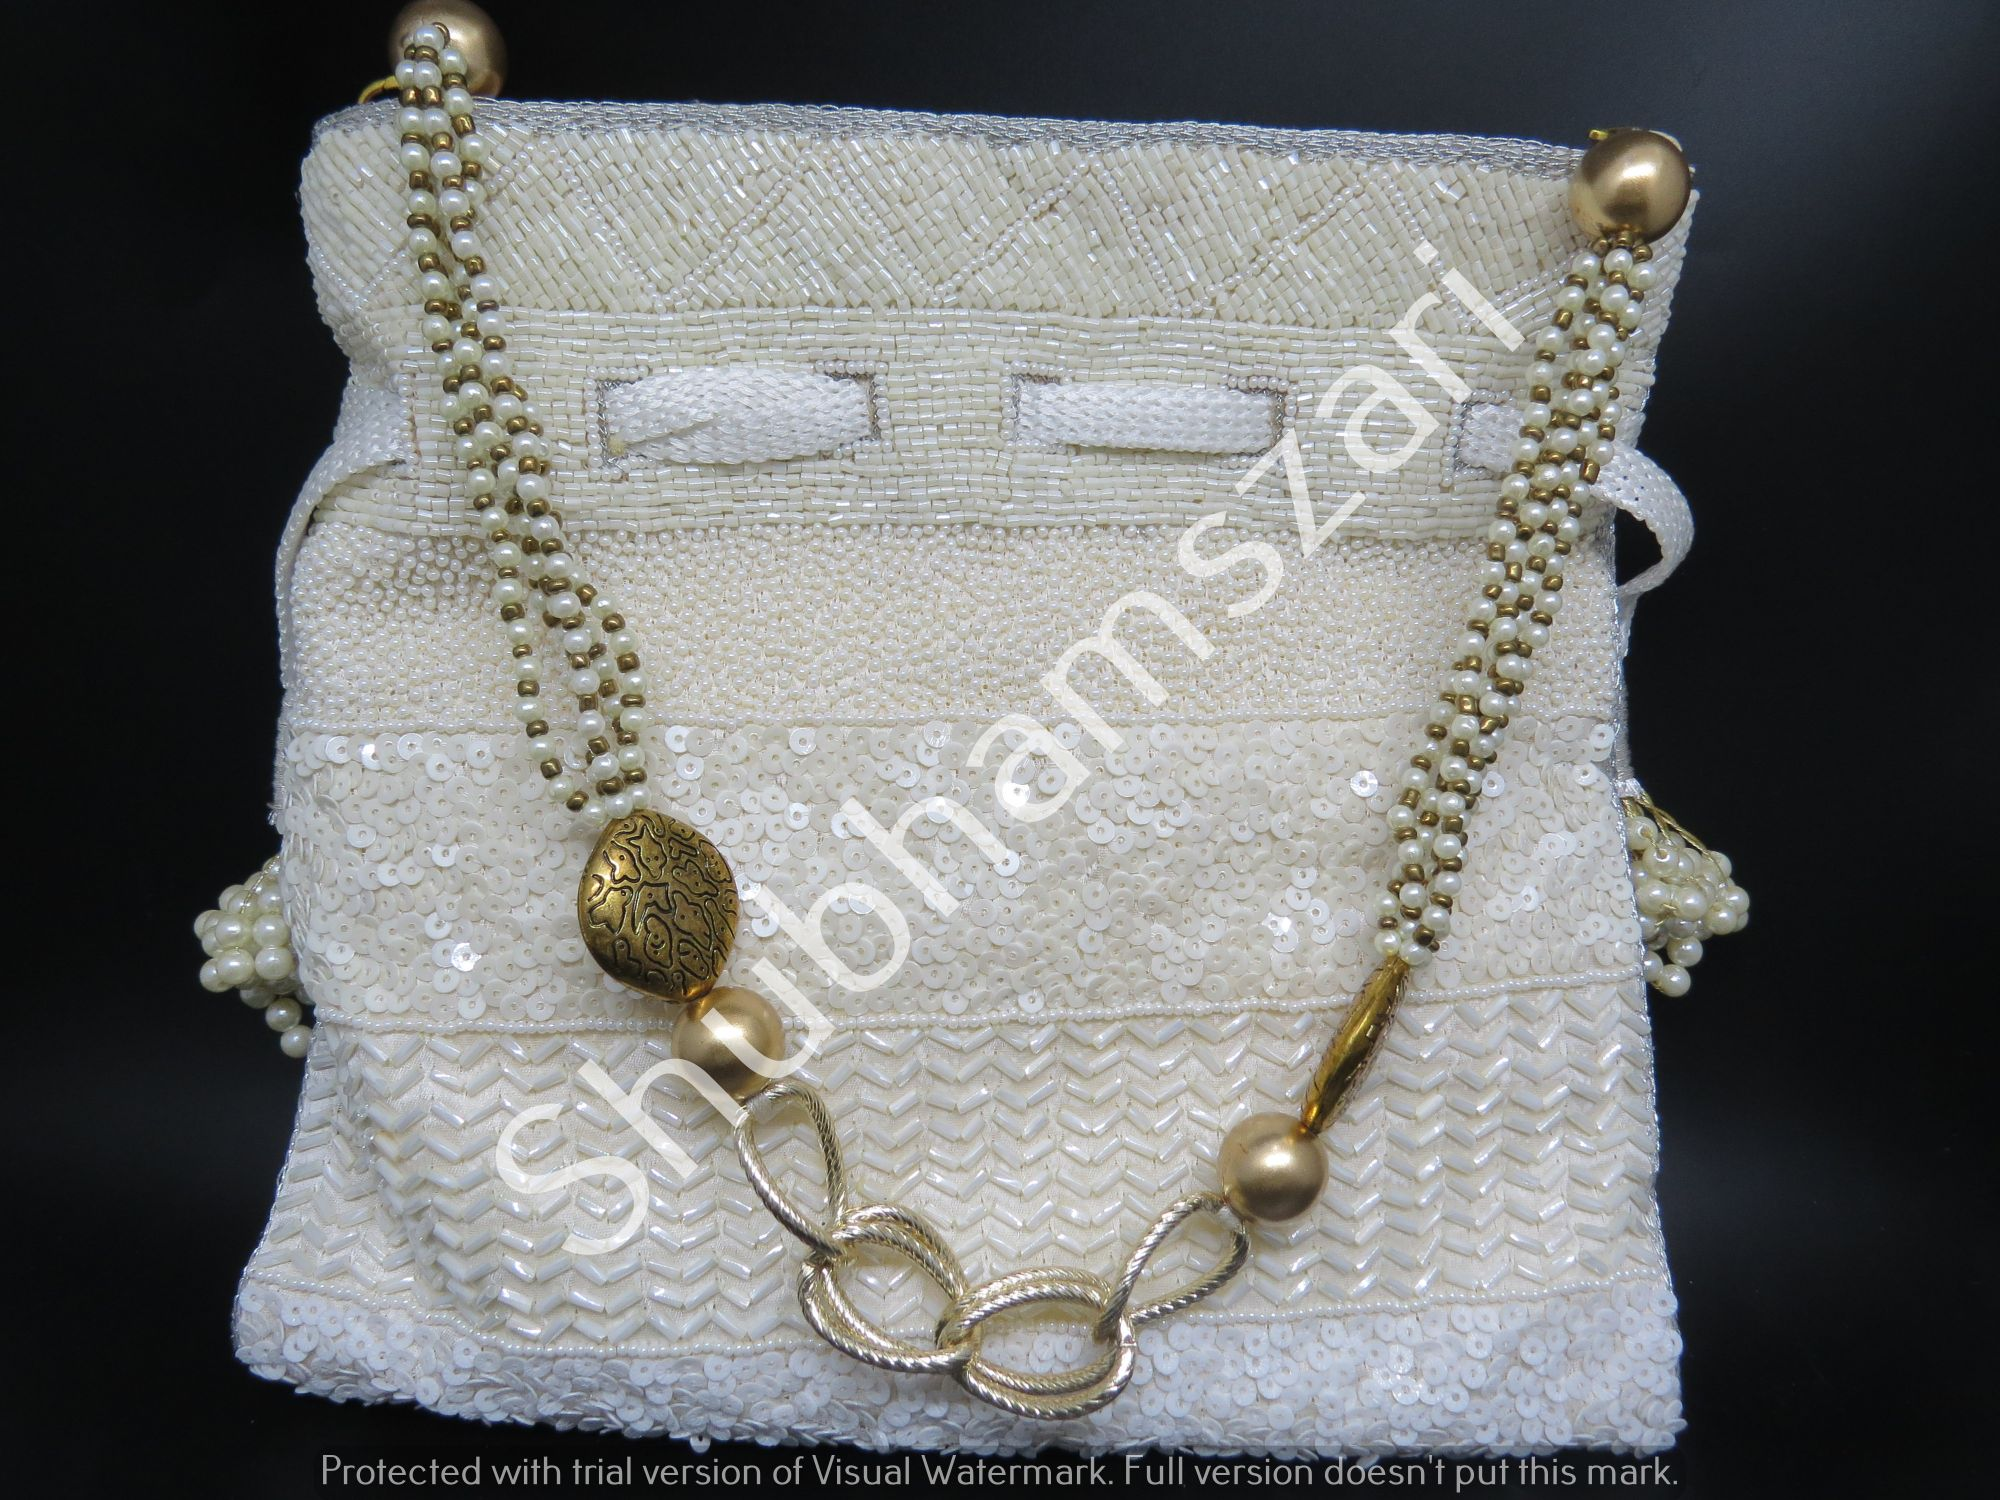 Hand Work White Pearl Katdana potli , handcrafted, handmade, designer luxury handbag, wedding clutch, party clutch